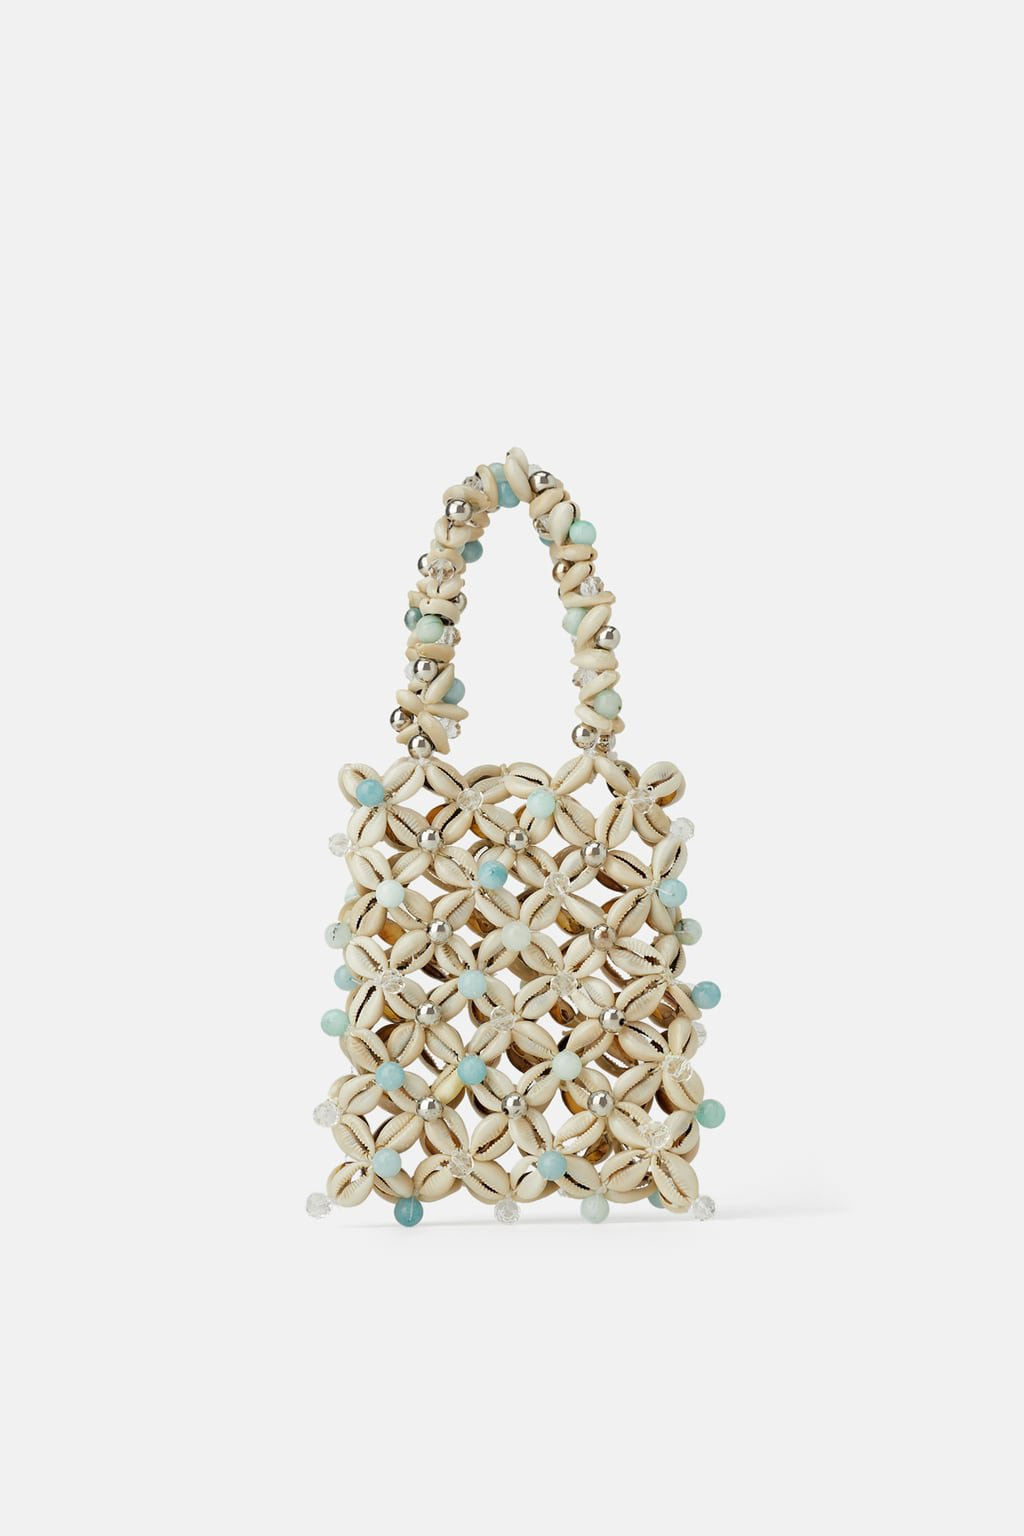 MINI HANDBAG WITH SHELLS - Party Bags-BAGS-WOMAN | ZARA United States